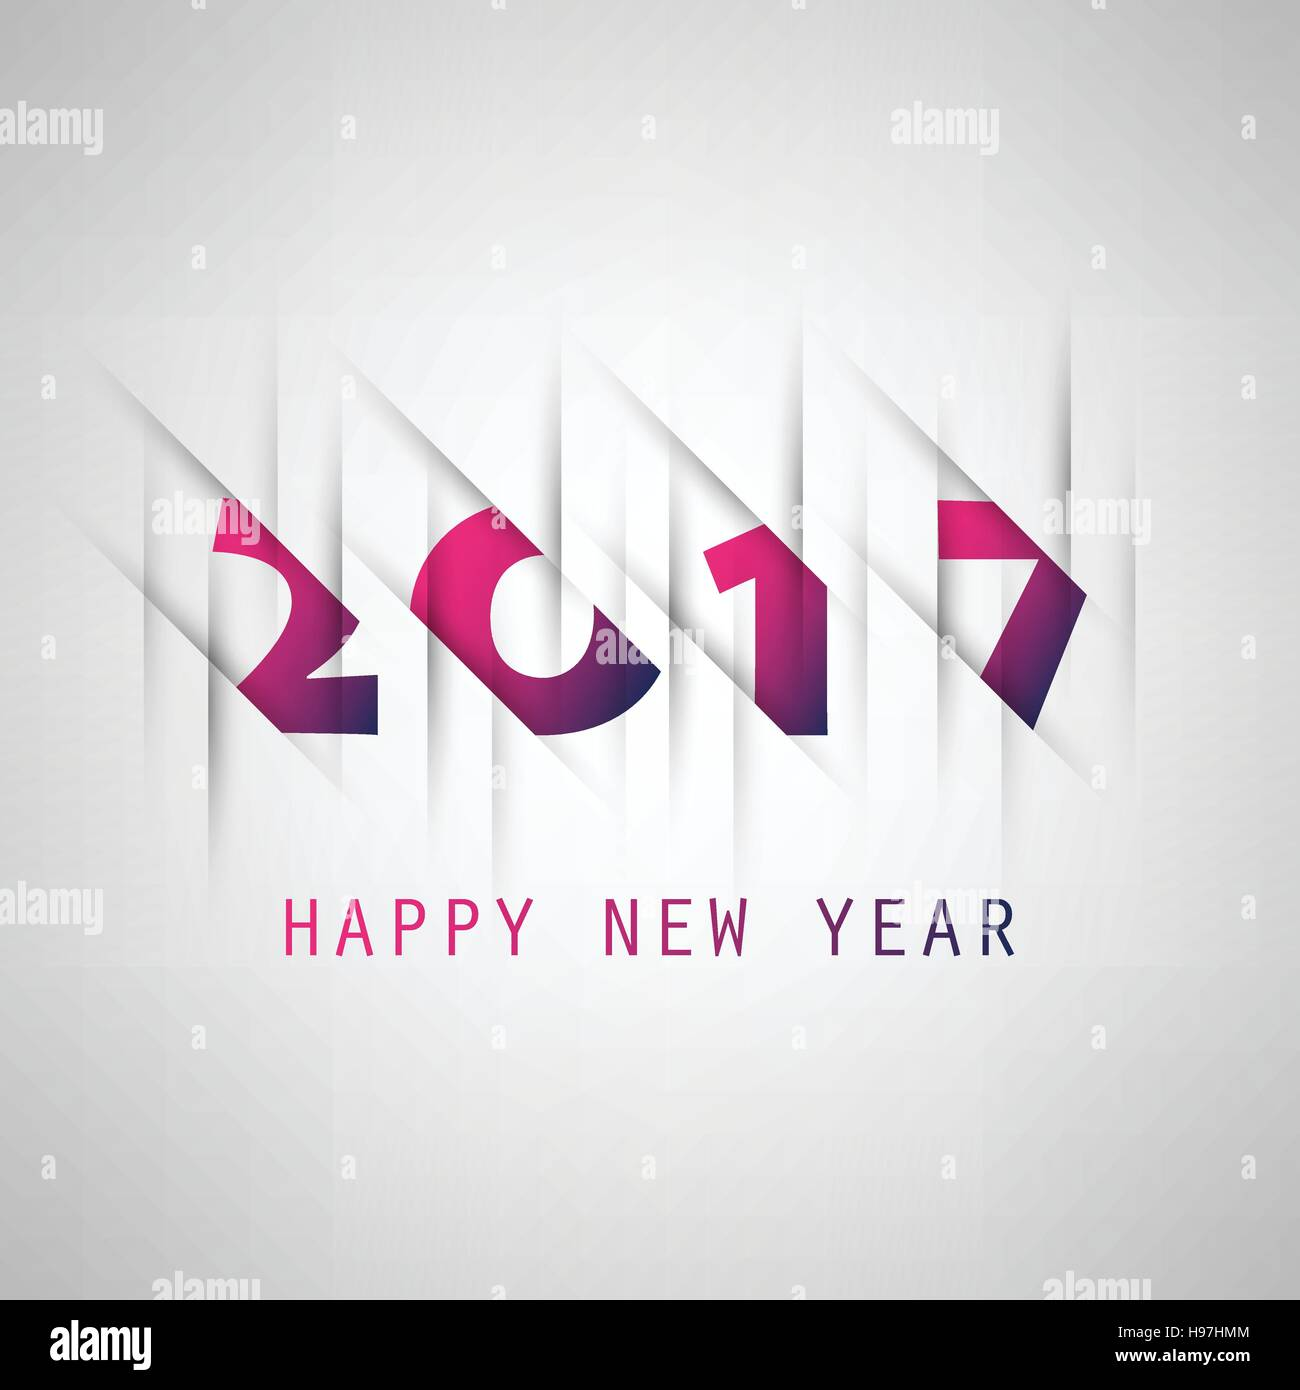 simple purple and blue new year card cover or background design template 2017